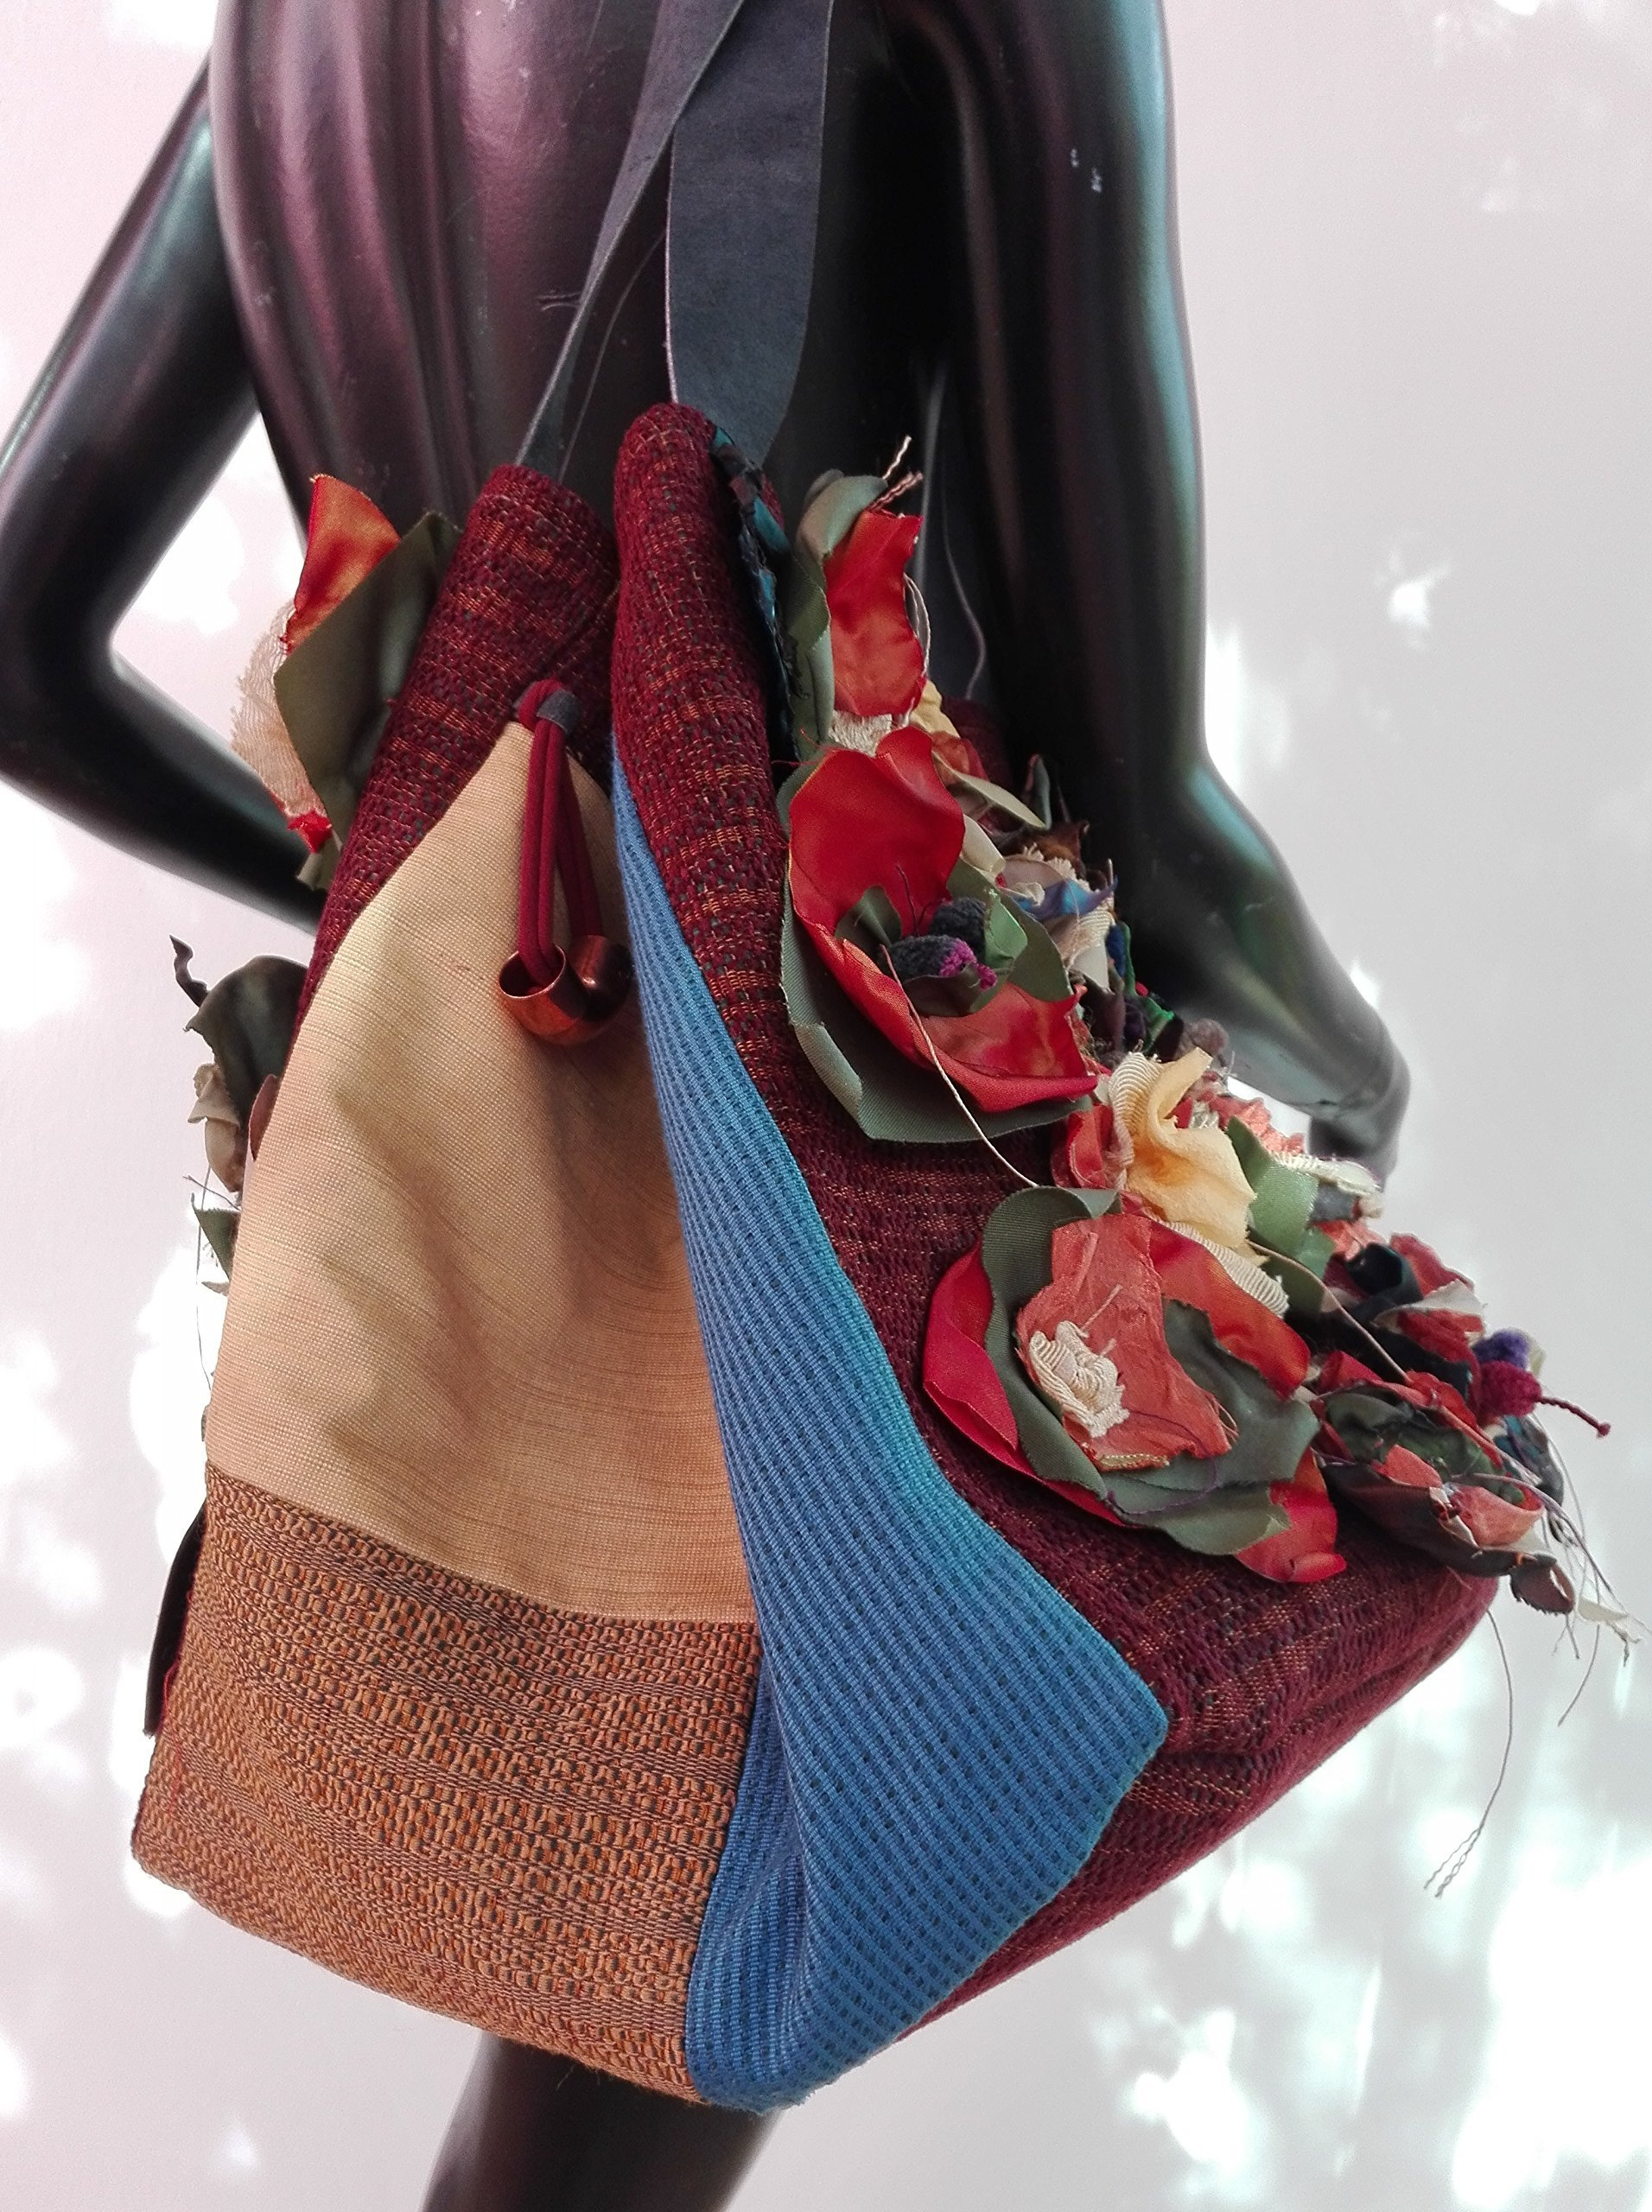 La Bottega di Malù - Carolina, Tote Bag Made in Italy in velvet and cotton with floral patchwork, measures 32x35x25 cm. - handmade-bags